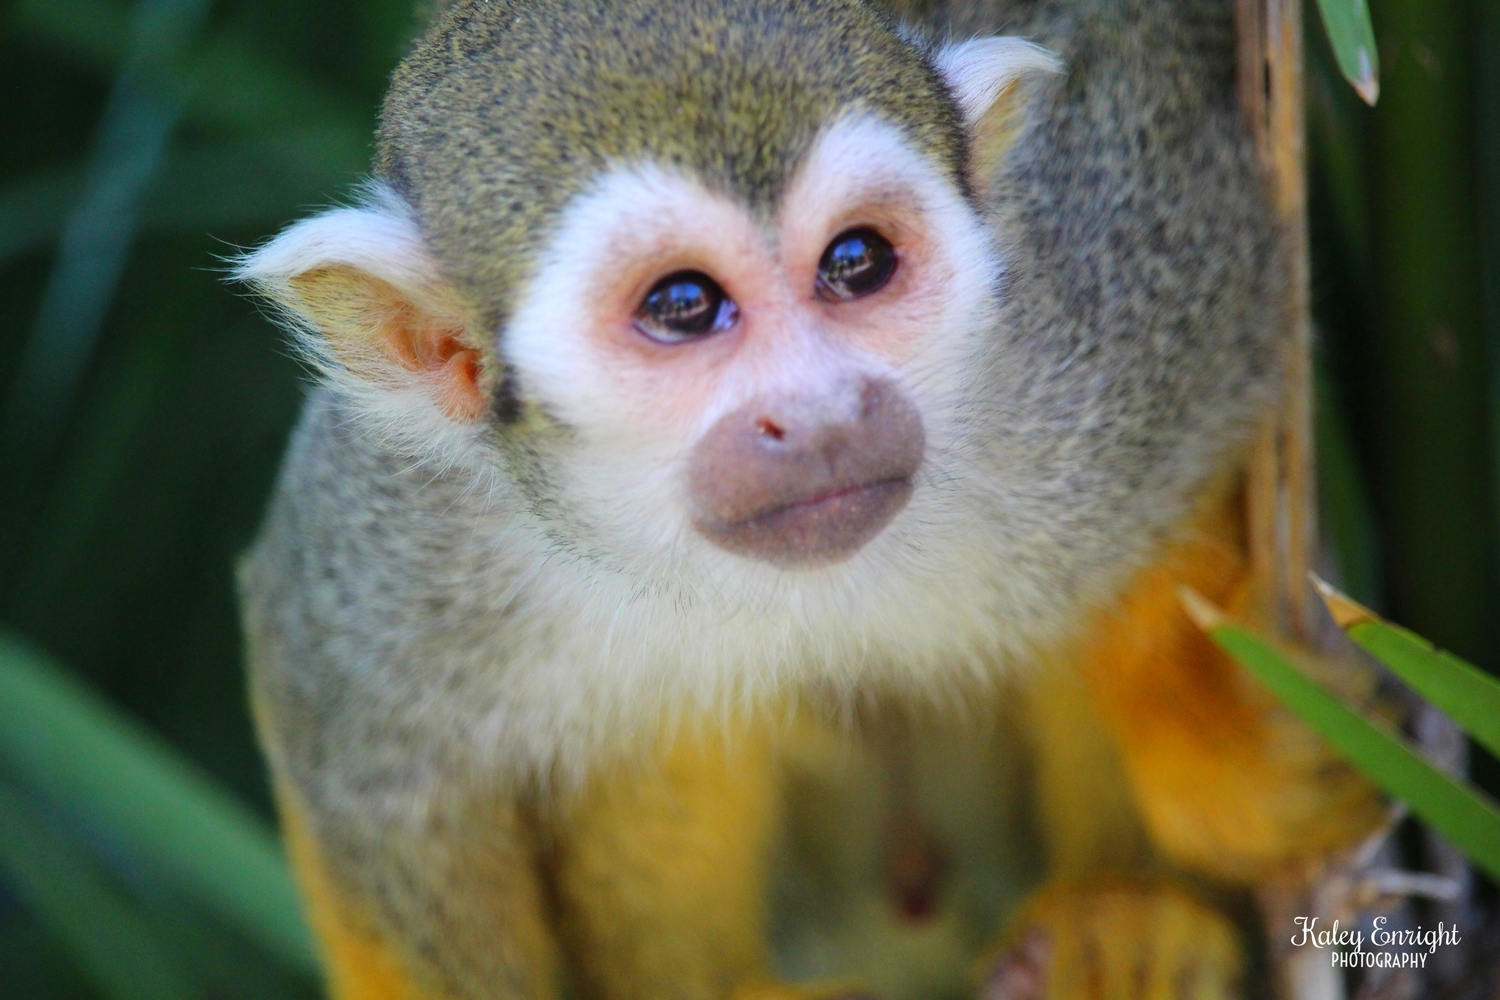 squirrel monkey kaley enright.jpg